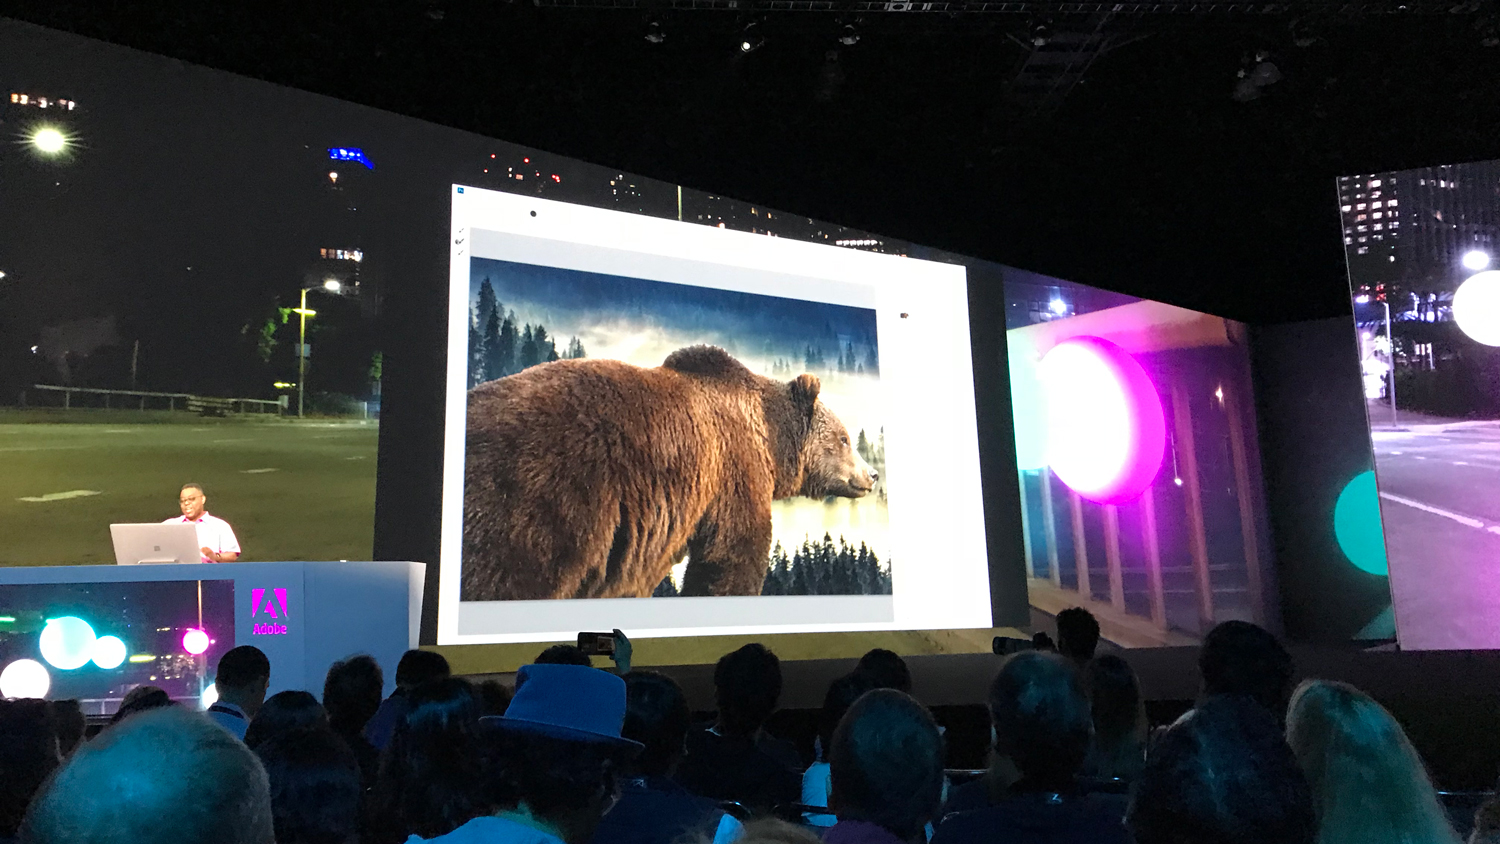 Announced at Adobe MAX: The Photoshop tools you've been waiting years for